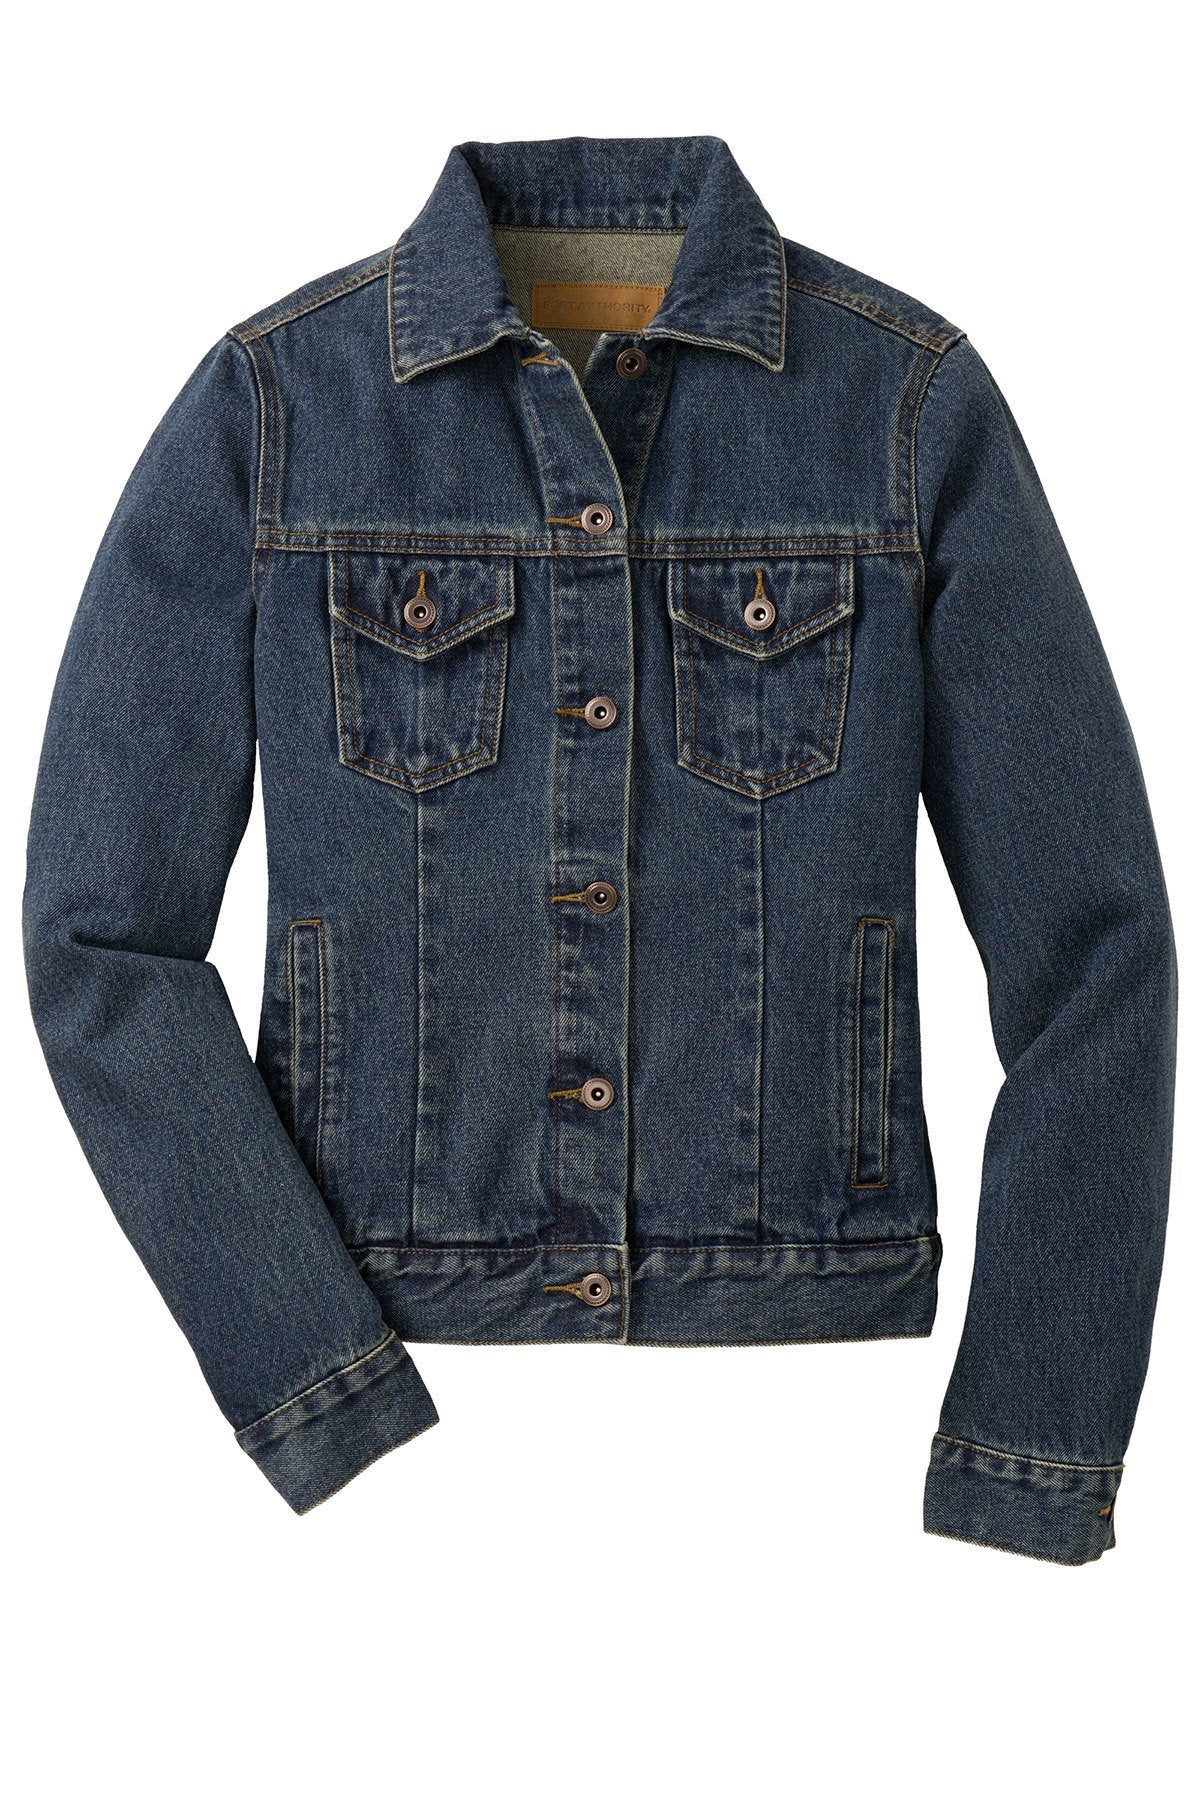 Customizable Embroidered Horse Denim Jacket - Ladies